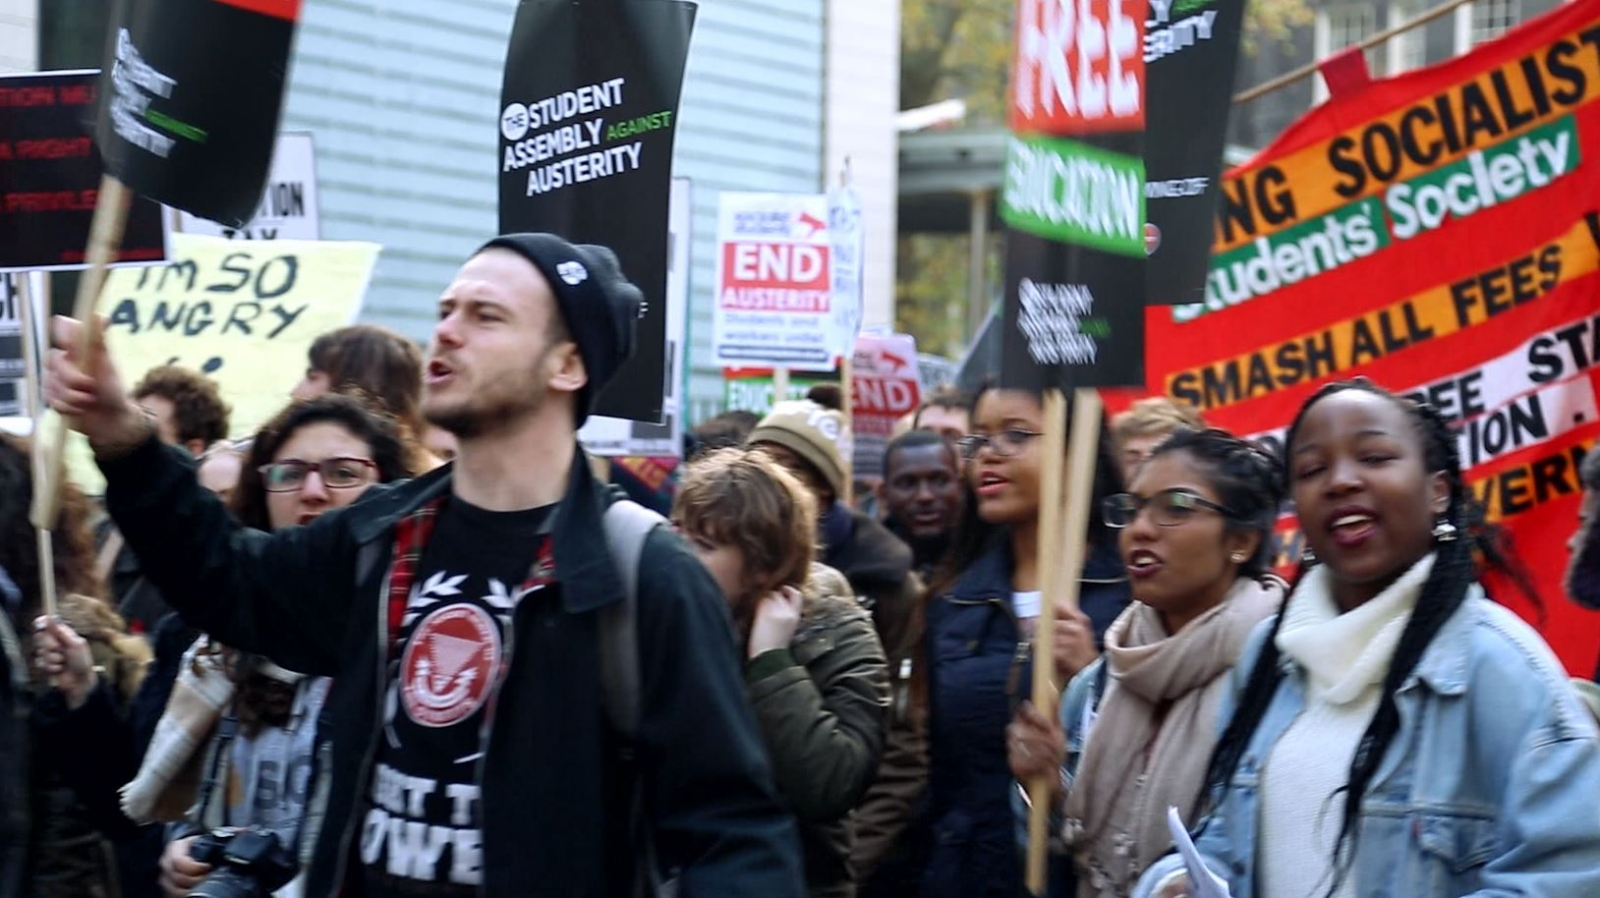 Student Tuition Fee Protesters March on UK Parliament